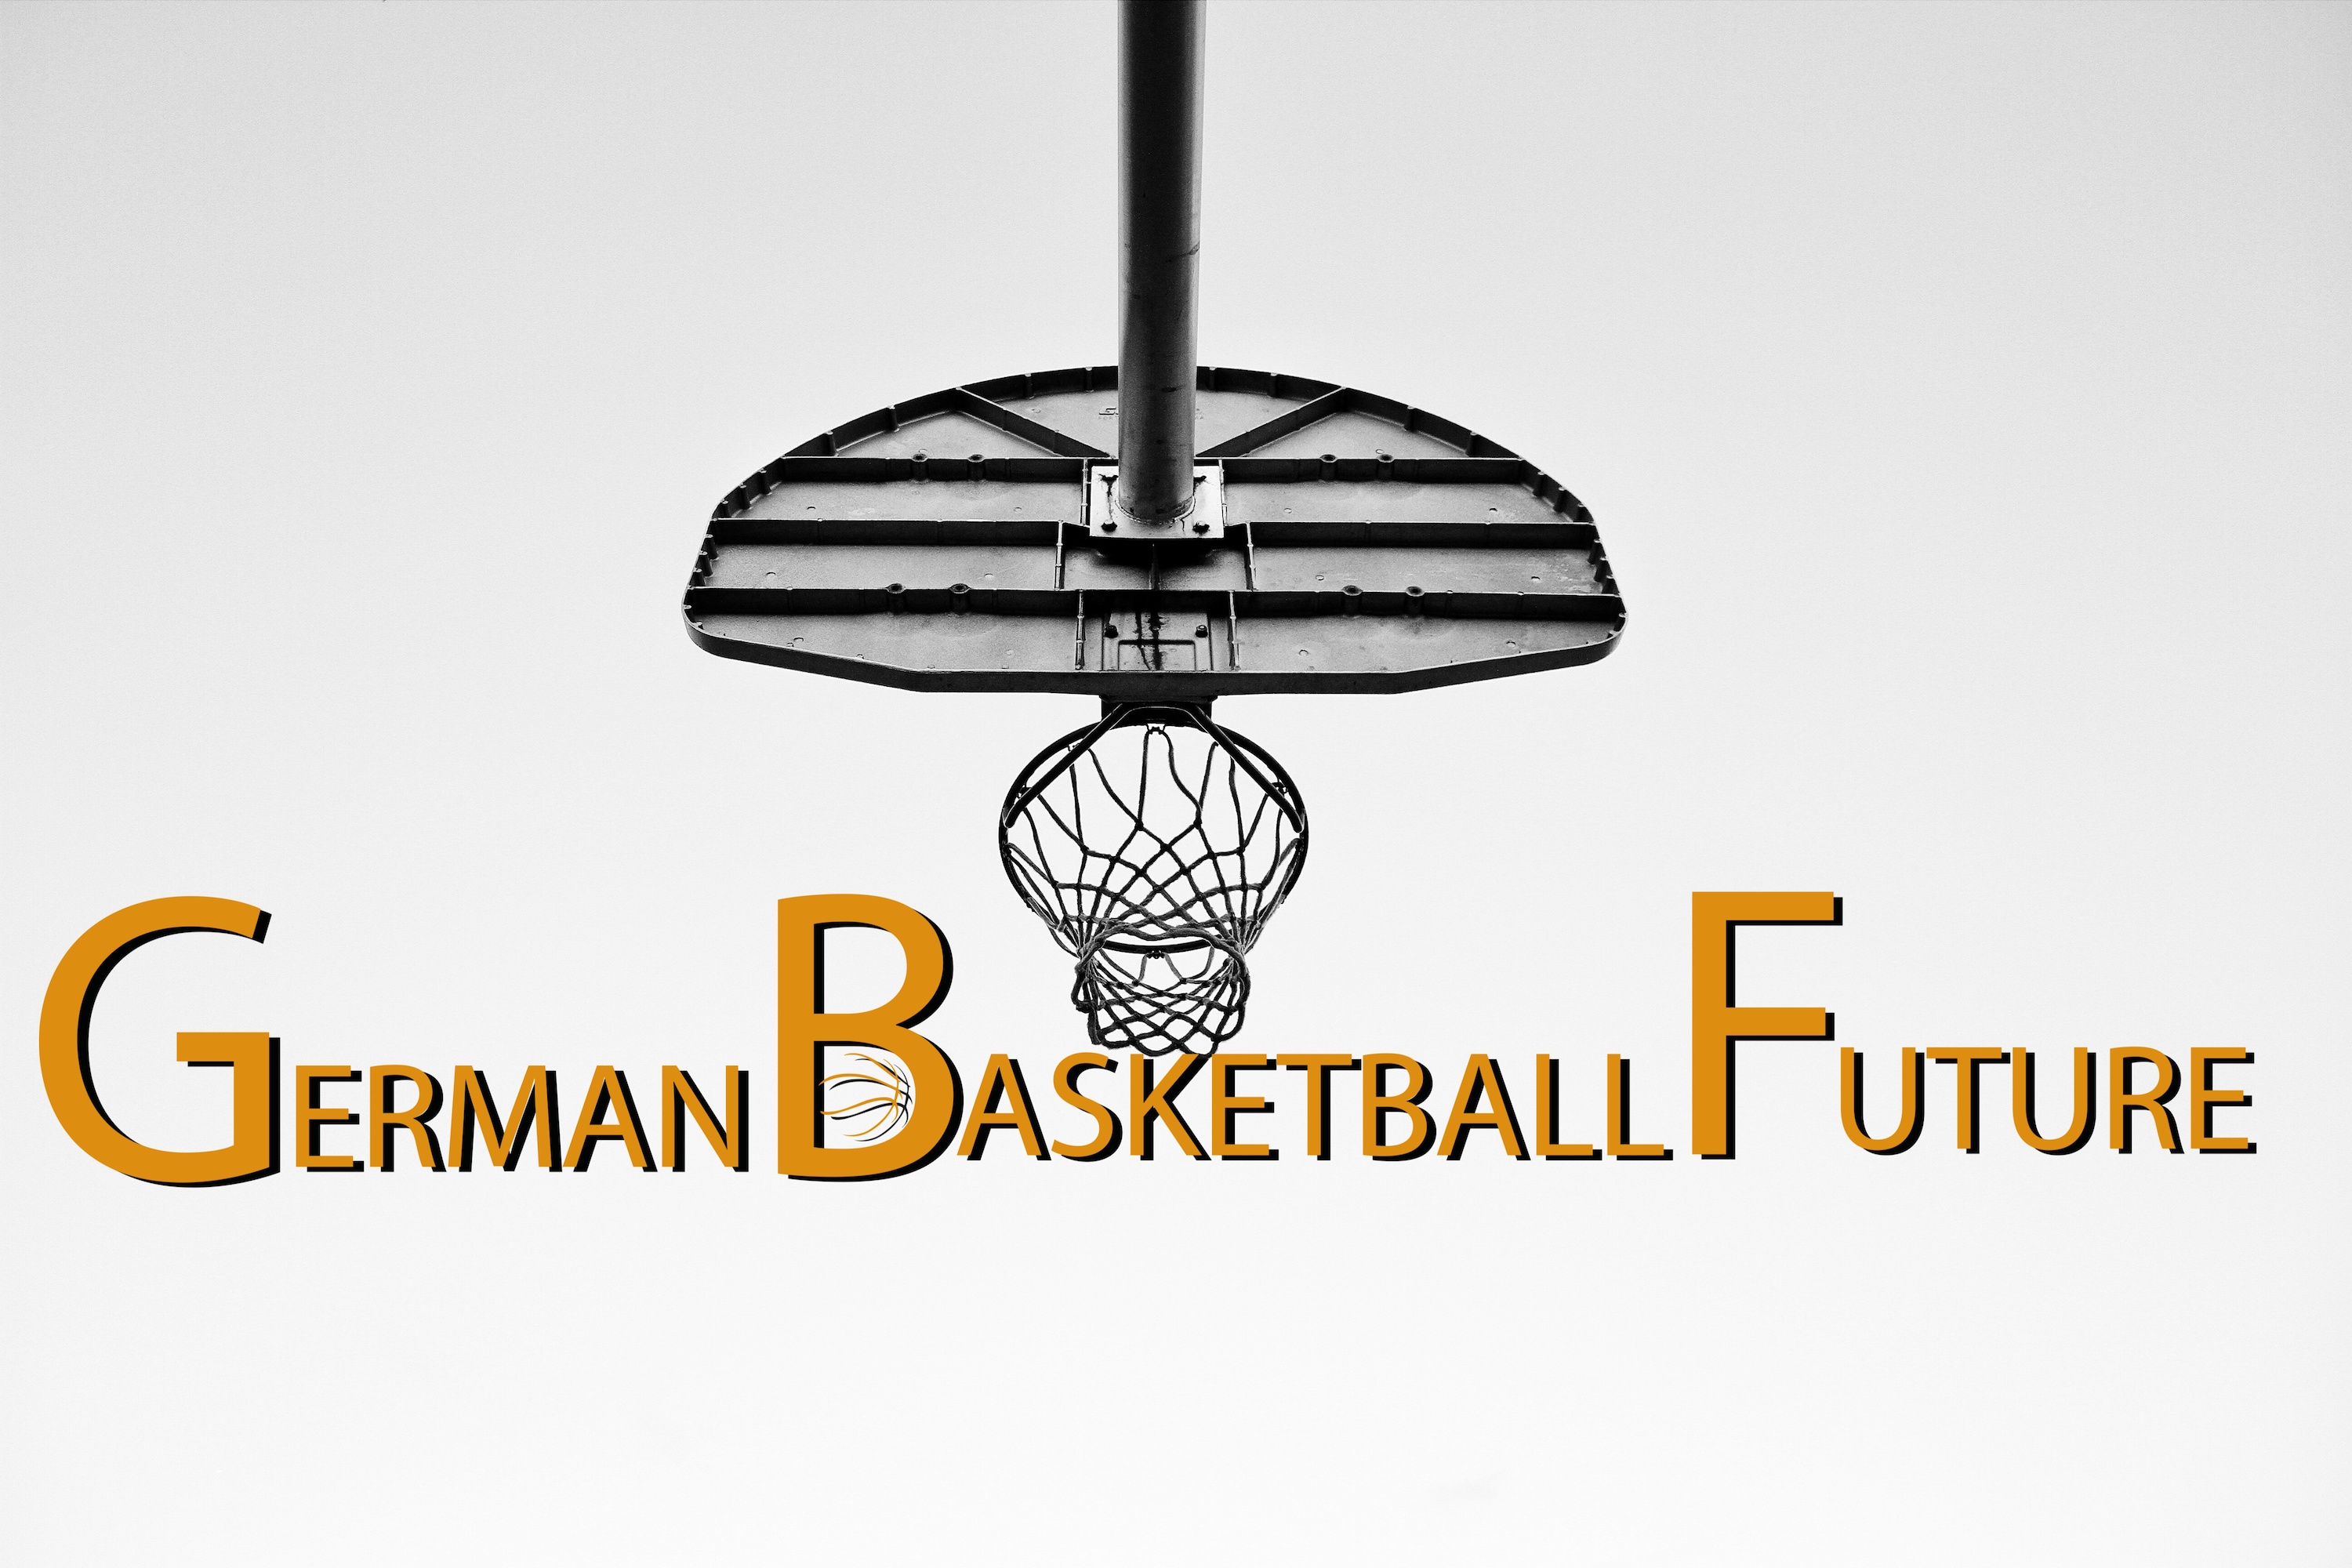 German Basketball Future